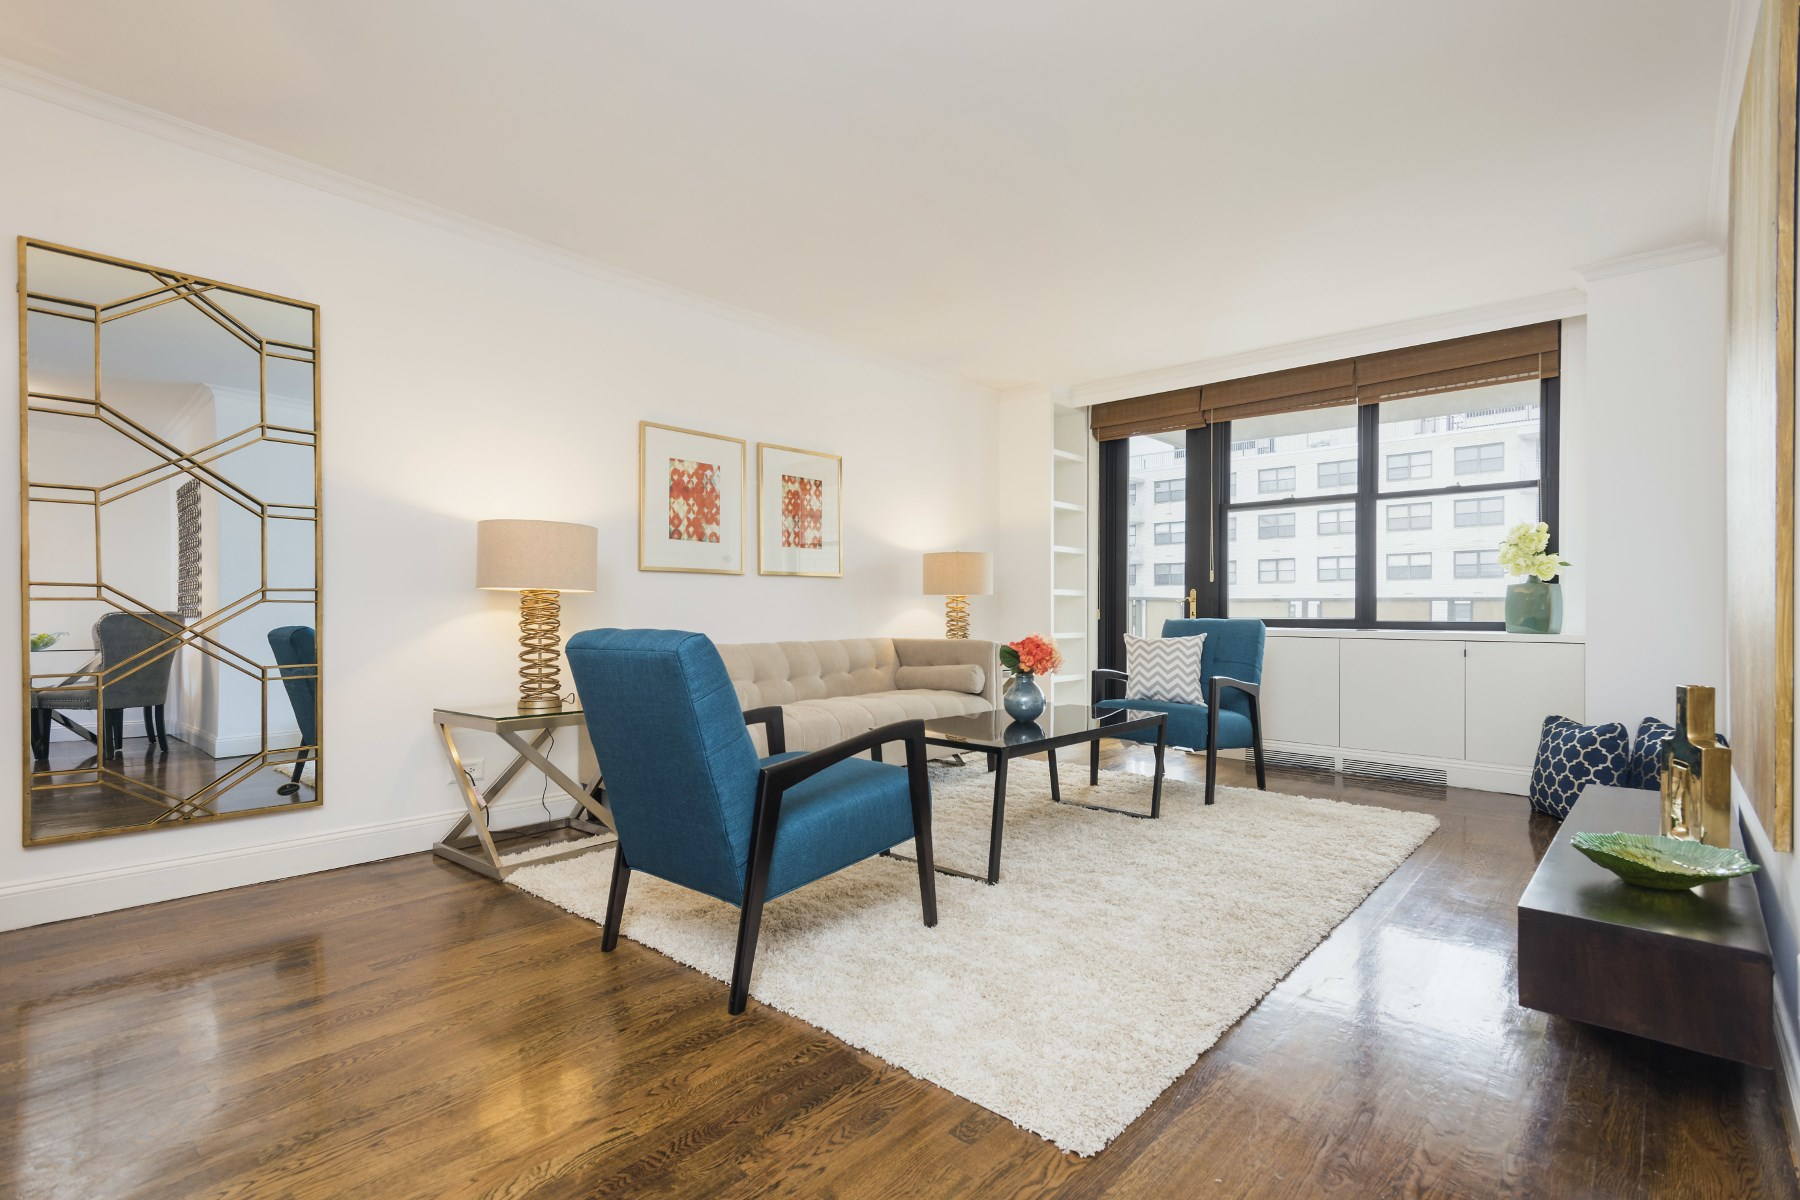 Co-op for Sale at 301 East 87th Street, Apt. 19F Upper East Side, New York, New York, 10128 United States